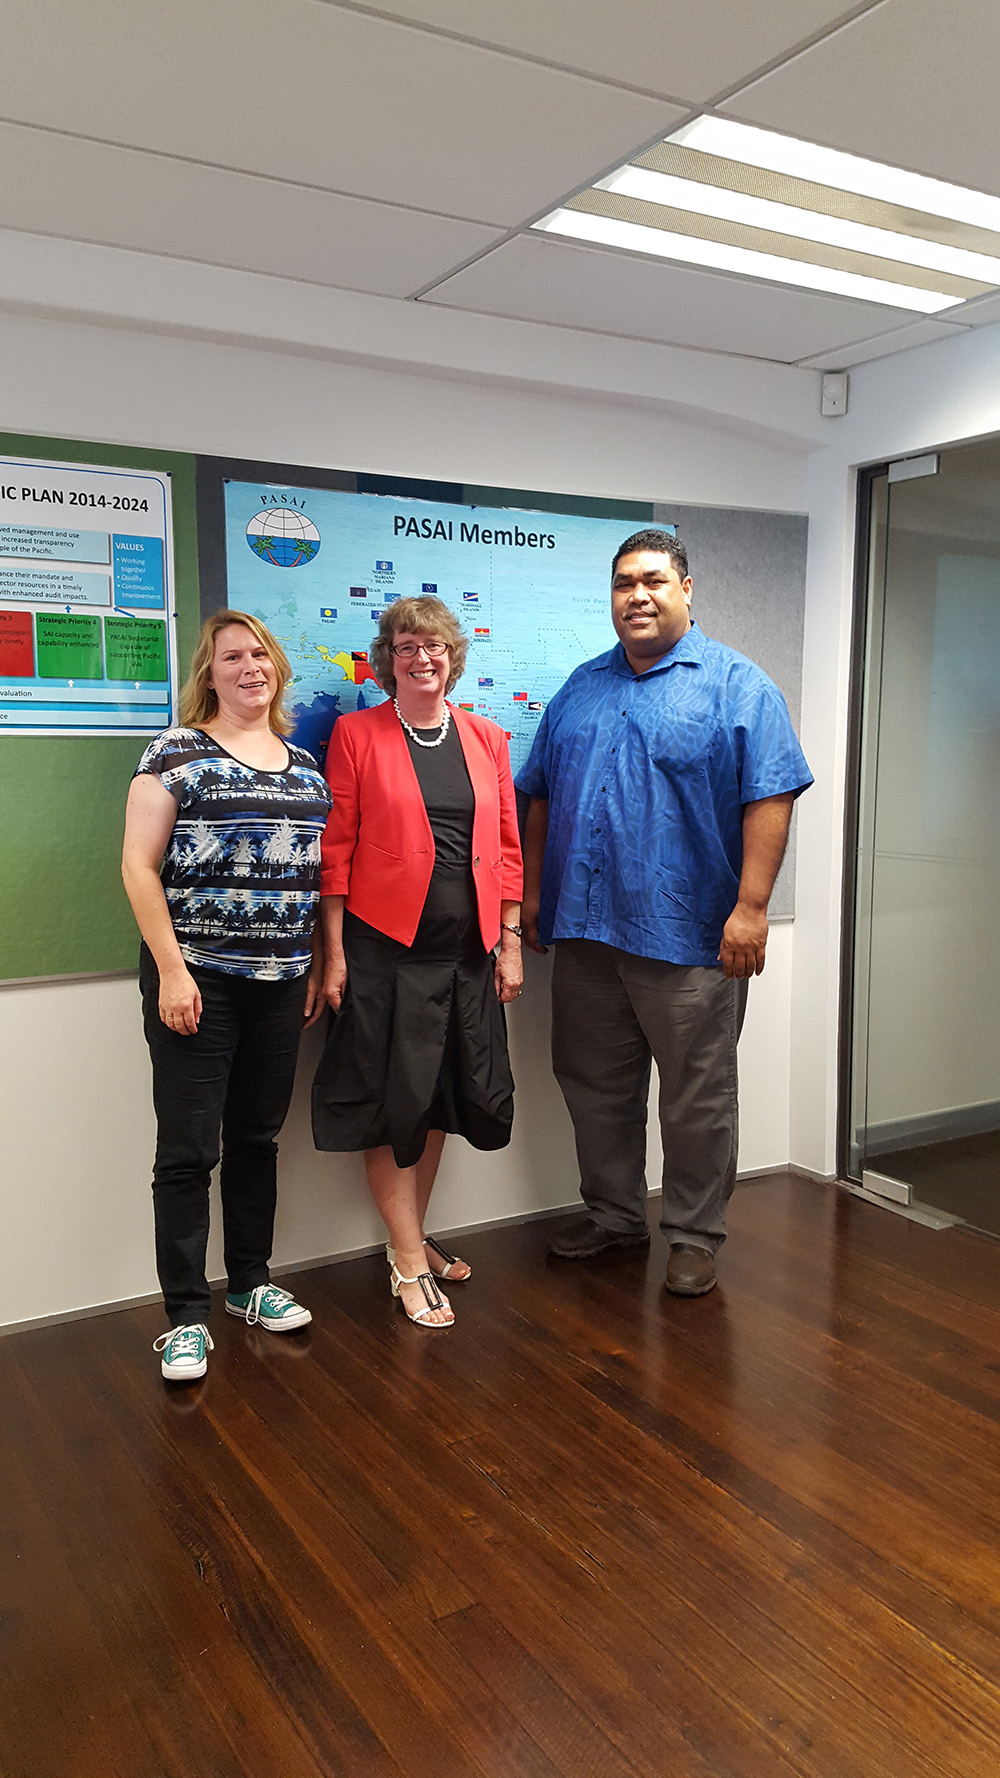 Lyn Provost visits the PASAI office, January 2017